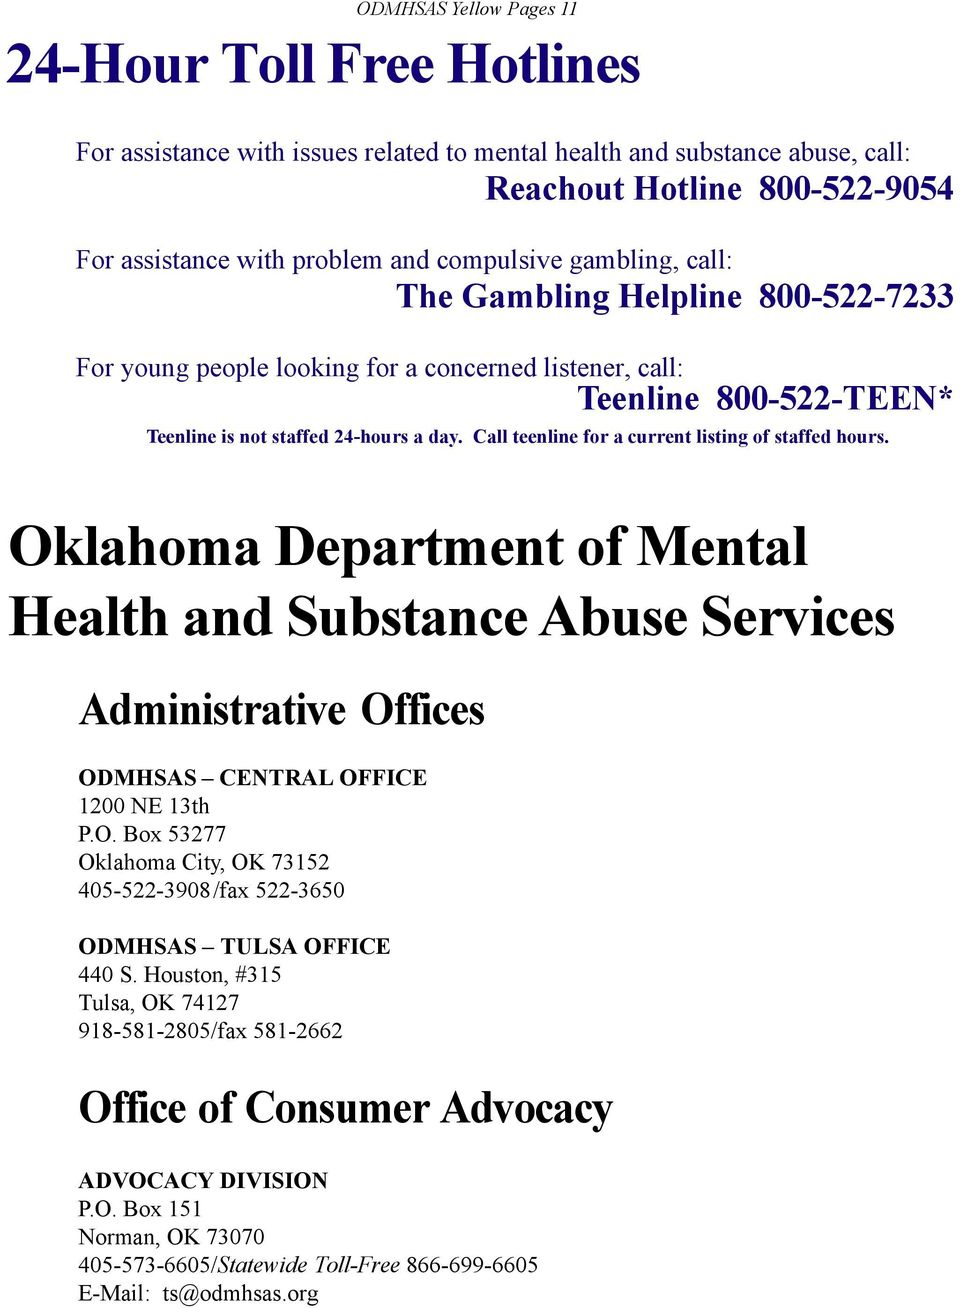 Call teenline for a current listing of staffed hours. Oklahoma Department of Mental Health and Substance Abuse Services Administrative Offices ODMHSAS CENTRAL OFFICE 1200 NE 13th P.O. Box 53277 Oklahoma City, OK 73152 405-522-3908/fax 522-3650 ODMHSAS TULSA OFFICE 440 S.